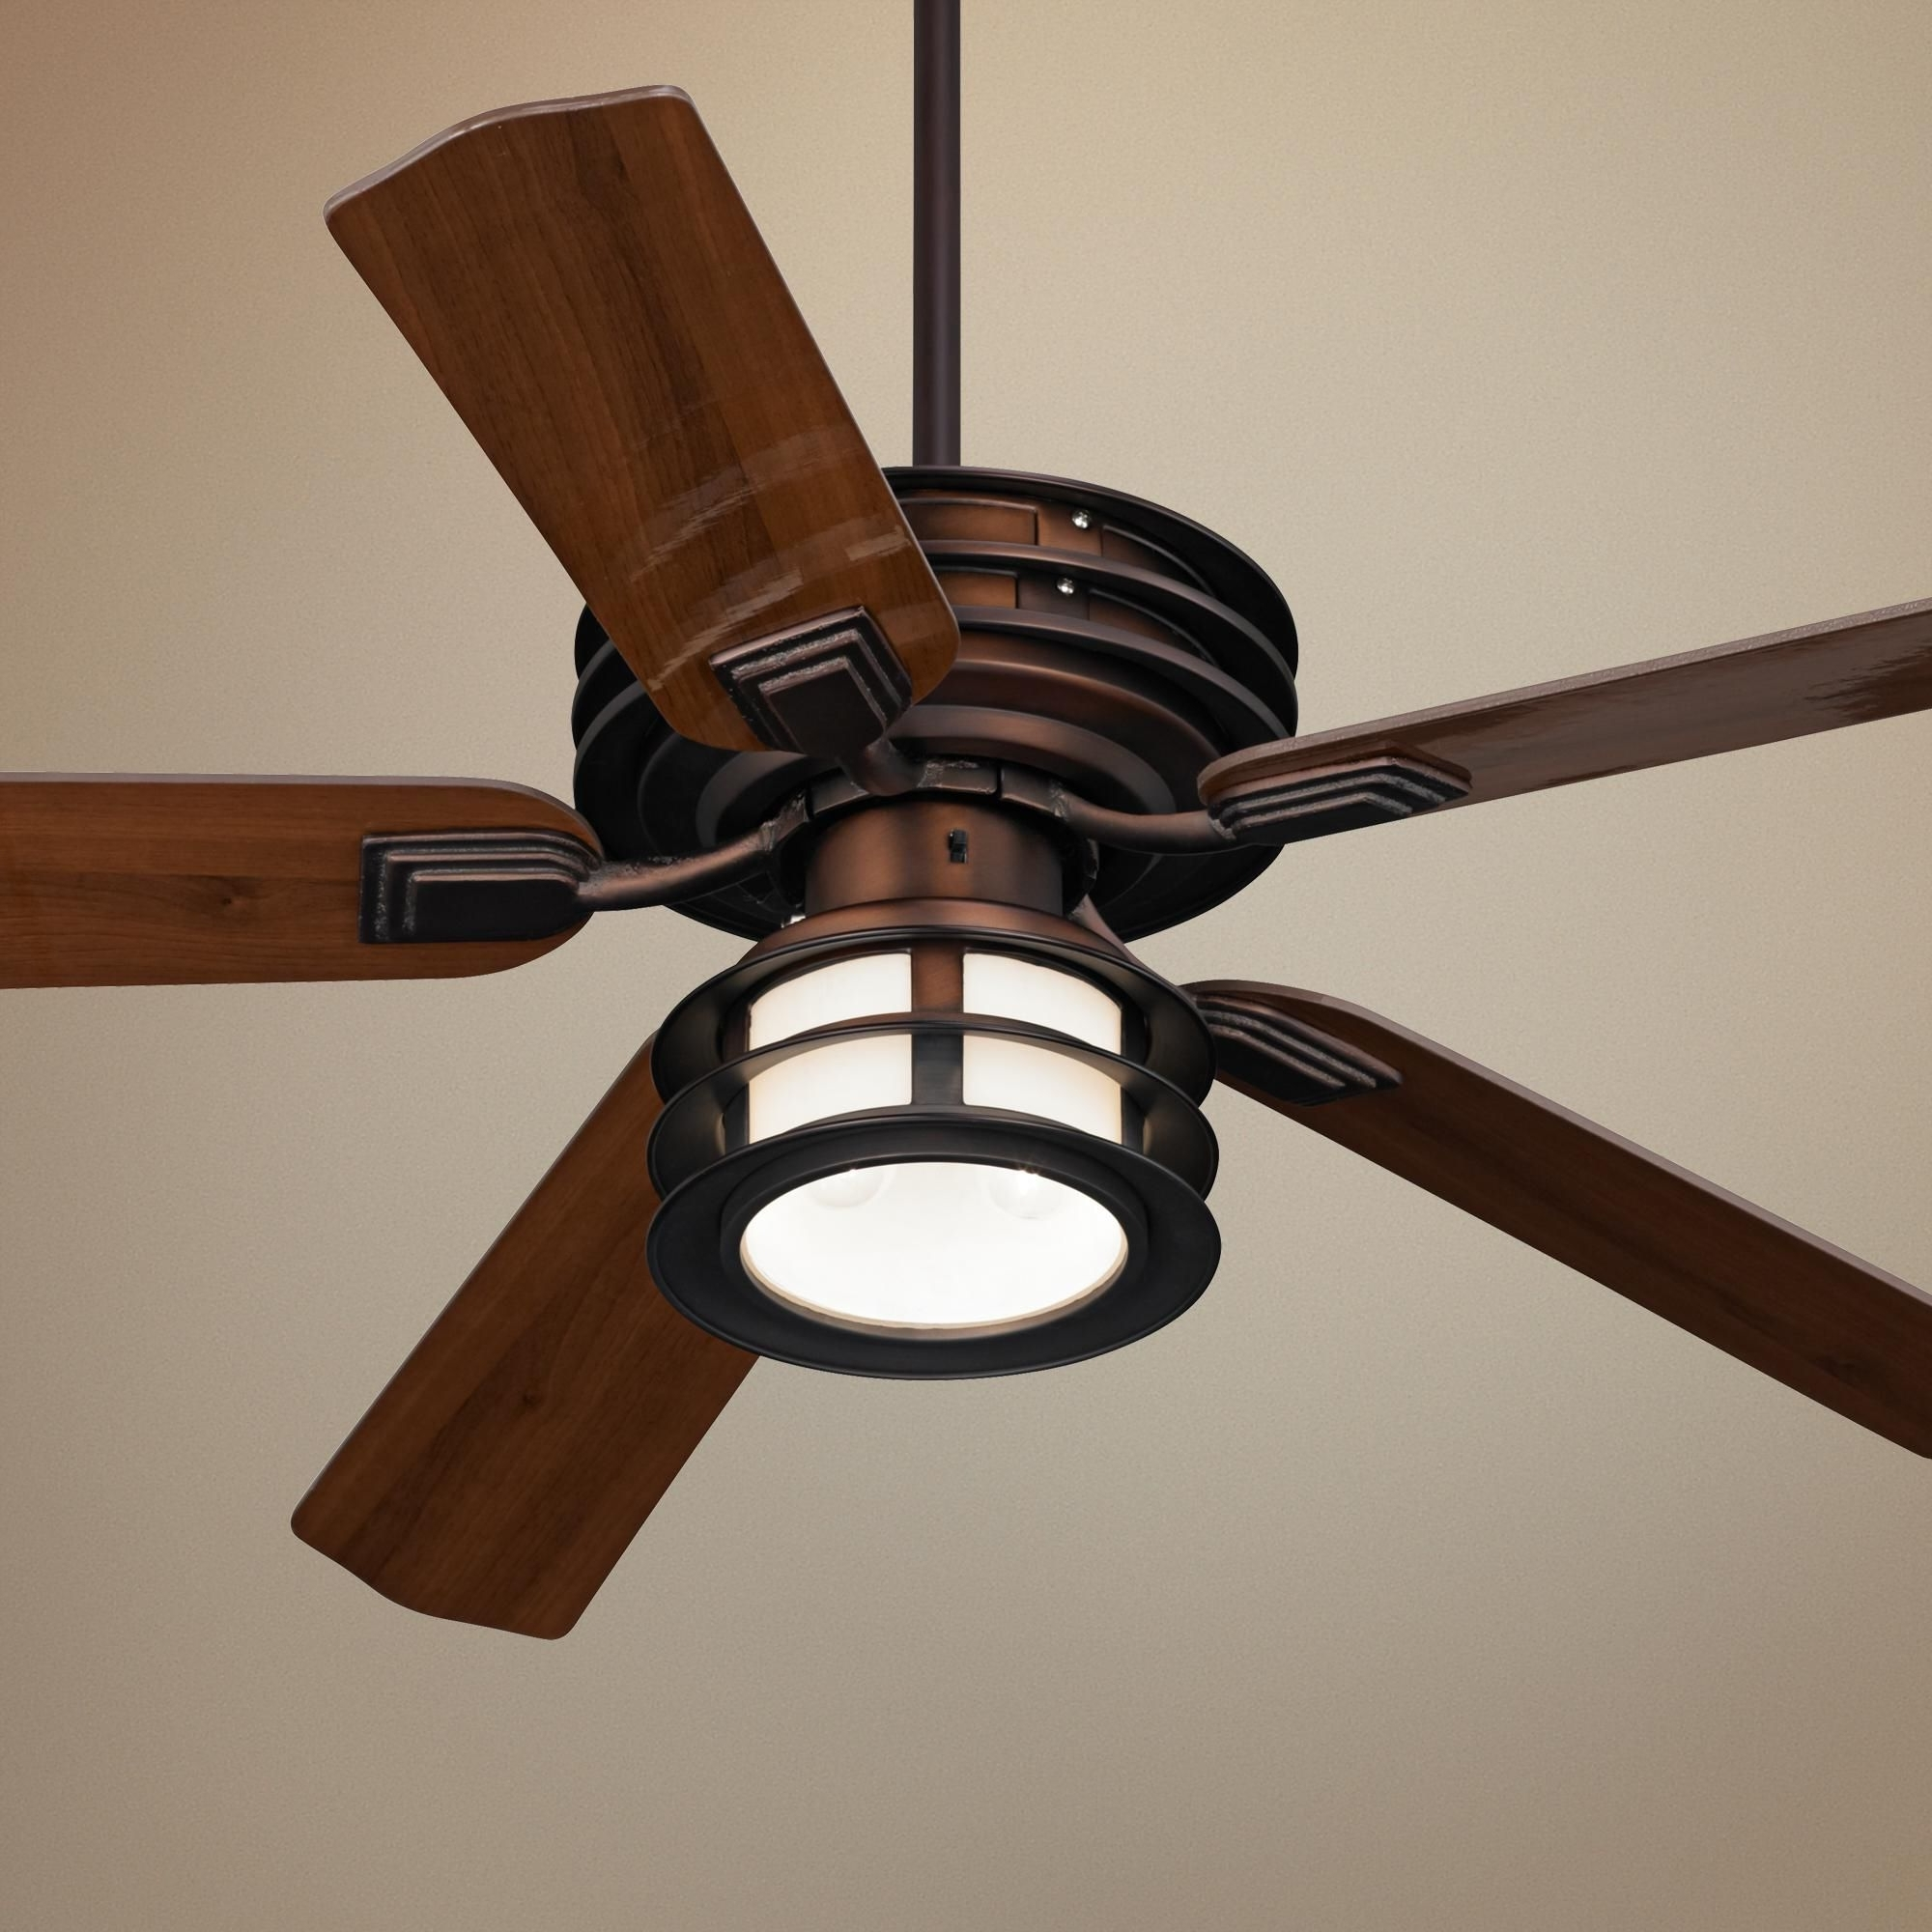 "Most Current Mission Style Outdoor Ceiling Fans With Lights Inside 52"" Casa Vieja Mission Ii Bronze Outdoor Ceiling Fan (View 7 of 20)"